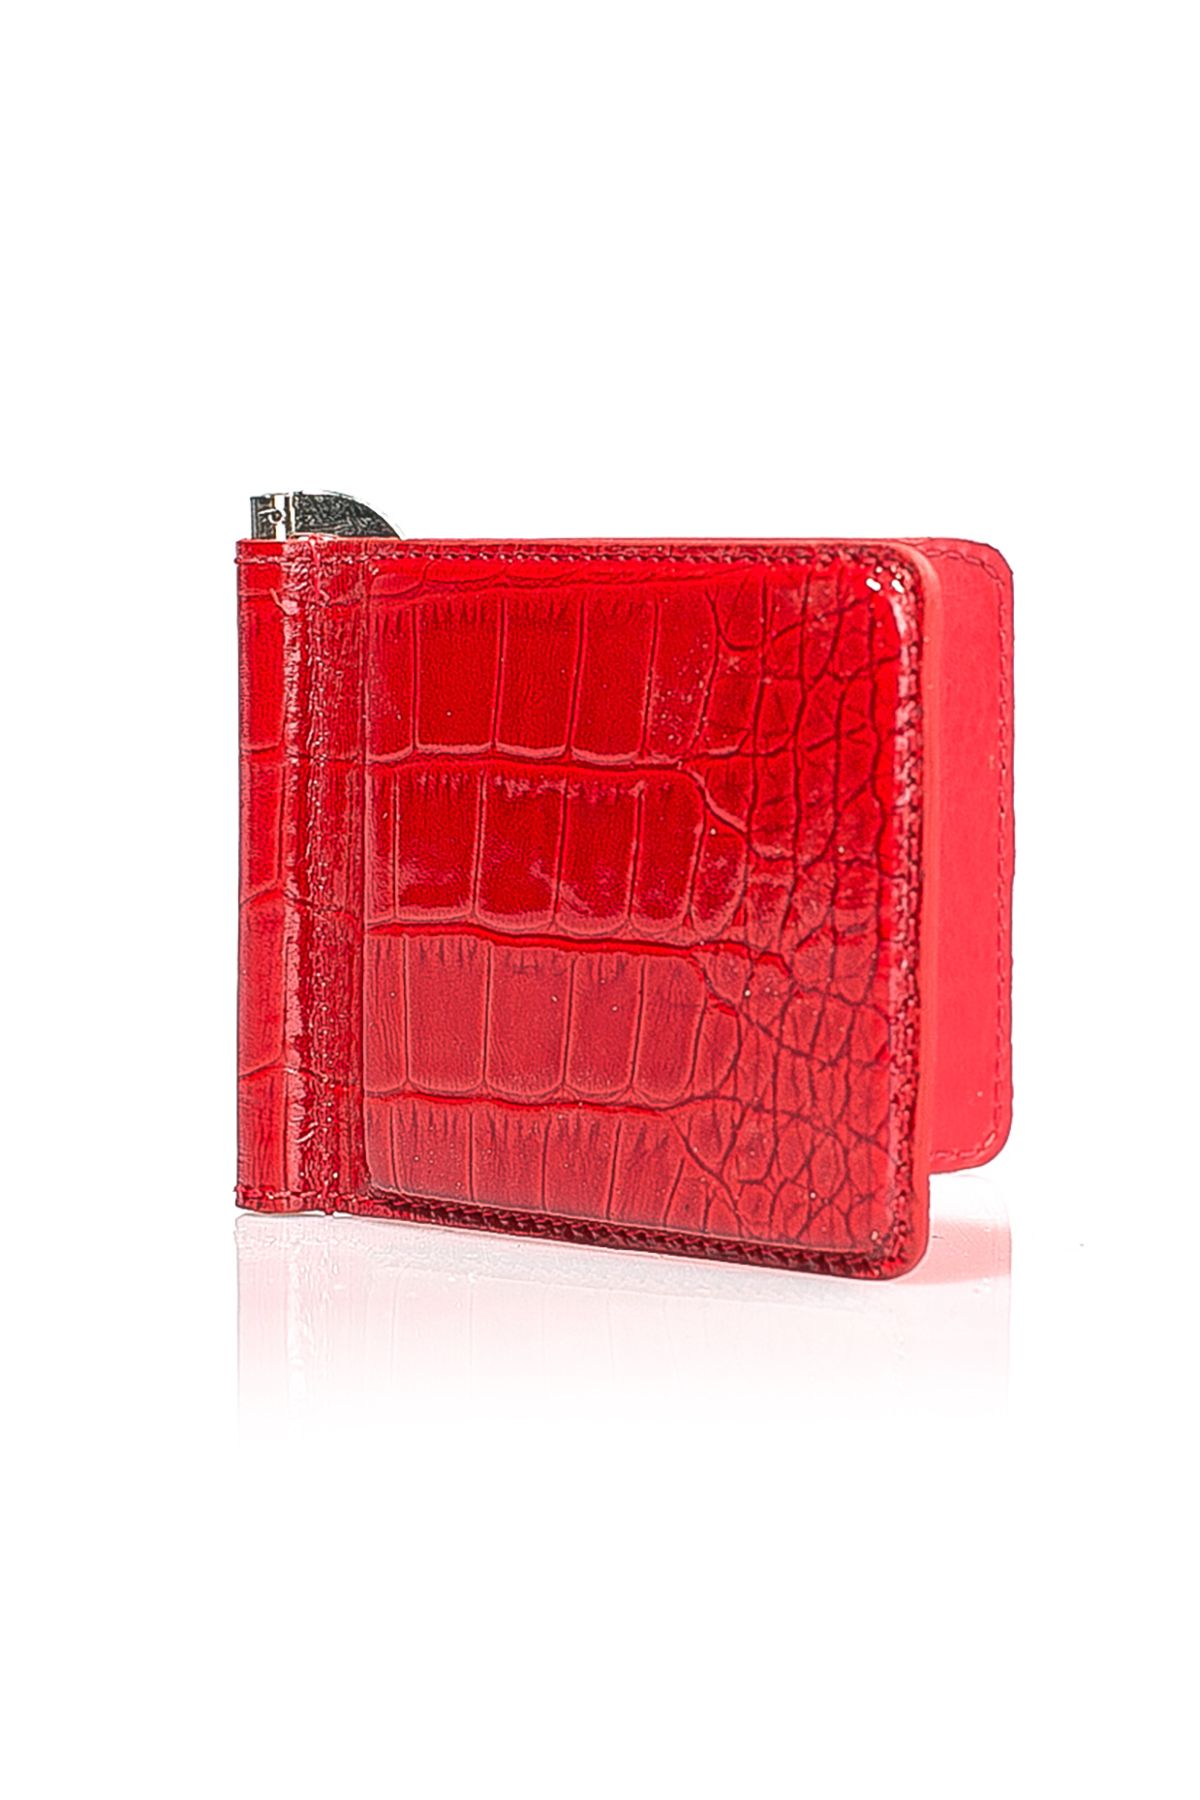 White Rabbit Leather Money Clip With Snake Pattern Red